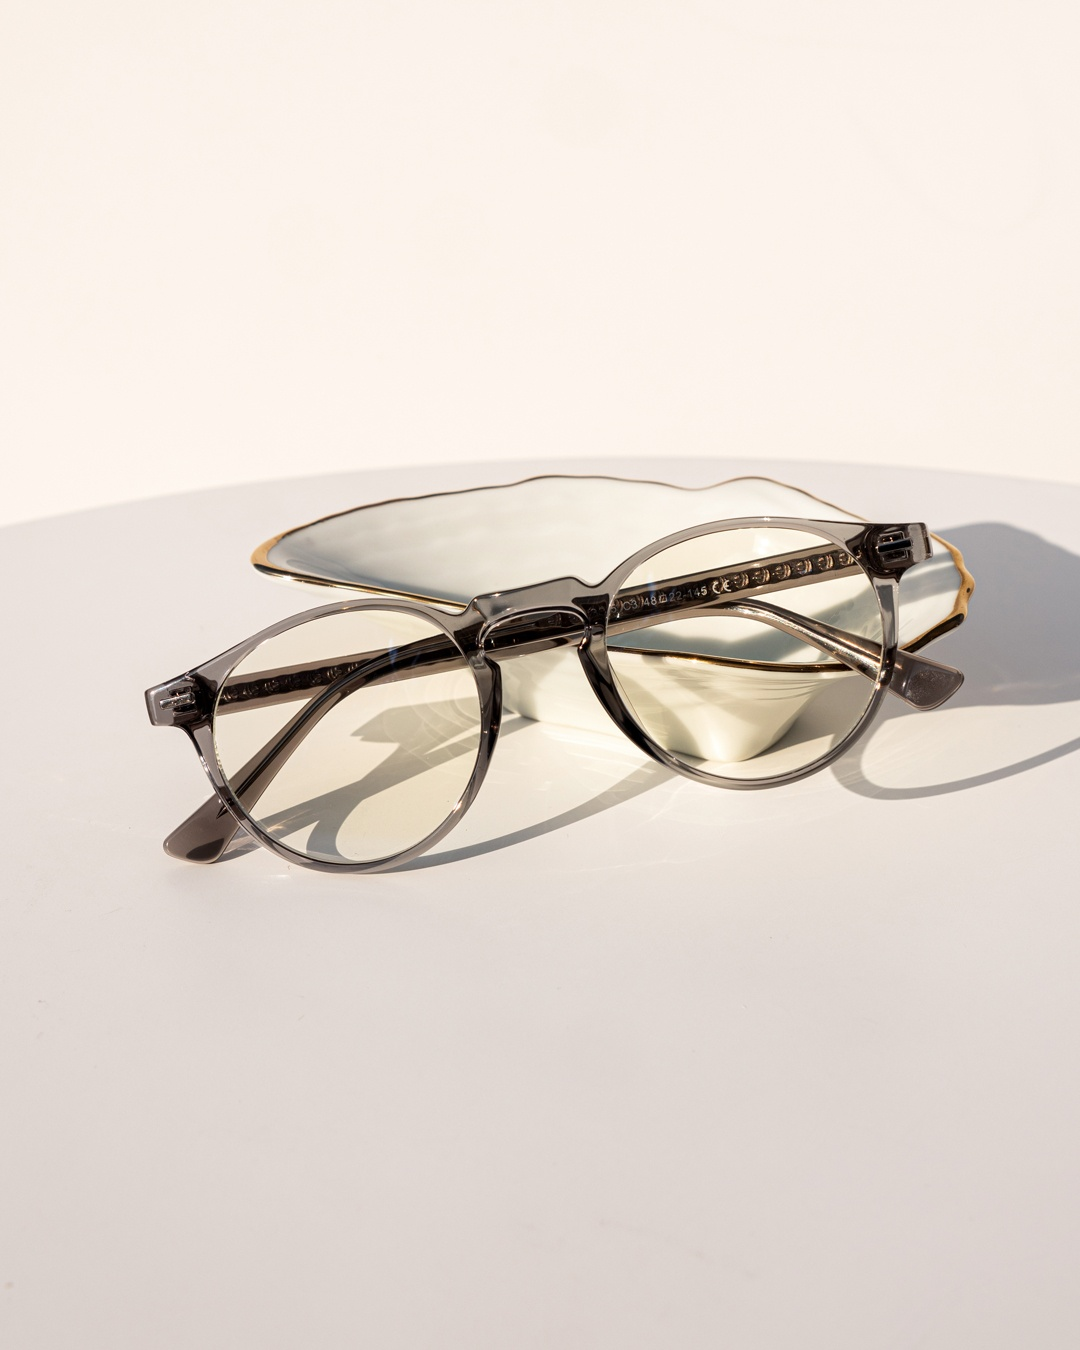 Panto Frame Glasses with a grey transparent silhouette rest against a white jewellery holder.